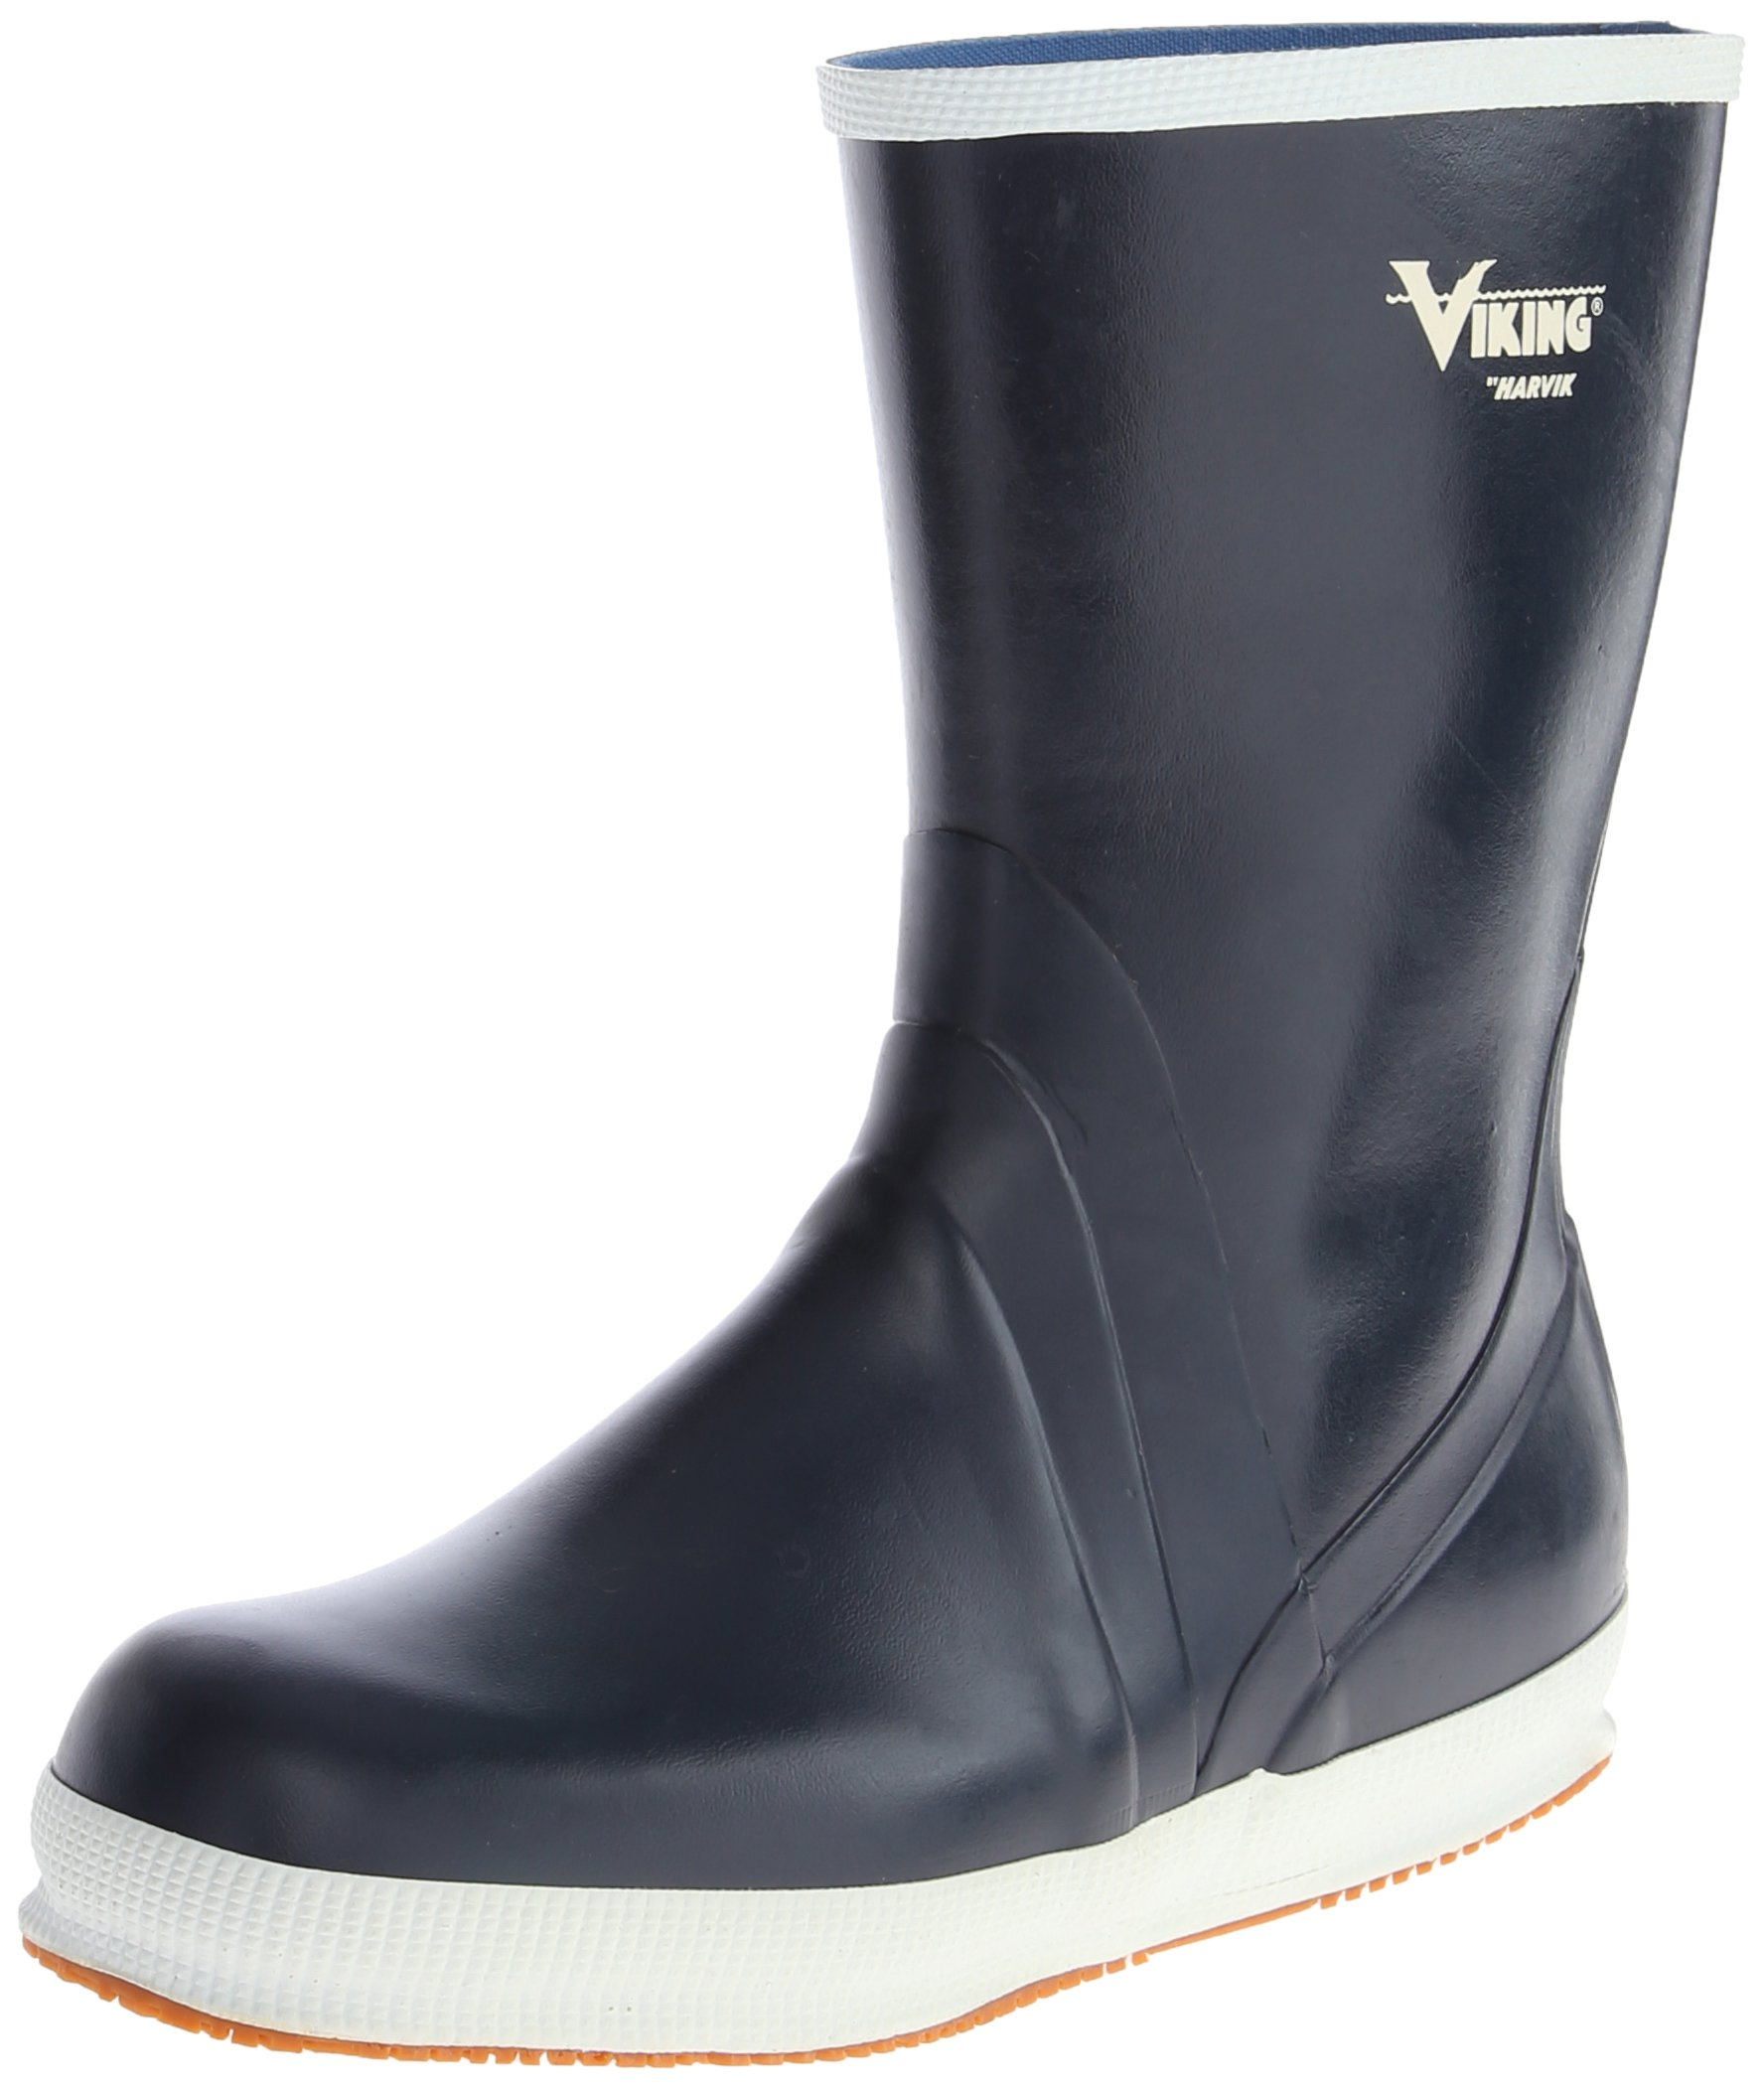 Viking Footwear Mariner Kadett Waterproof Slip-Resistant Boot,Navy,11 M US by Viking Footwear